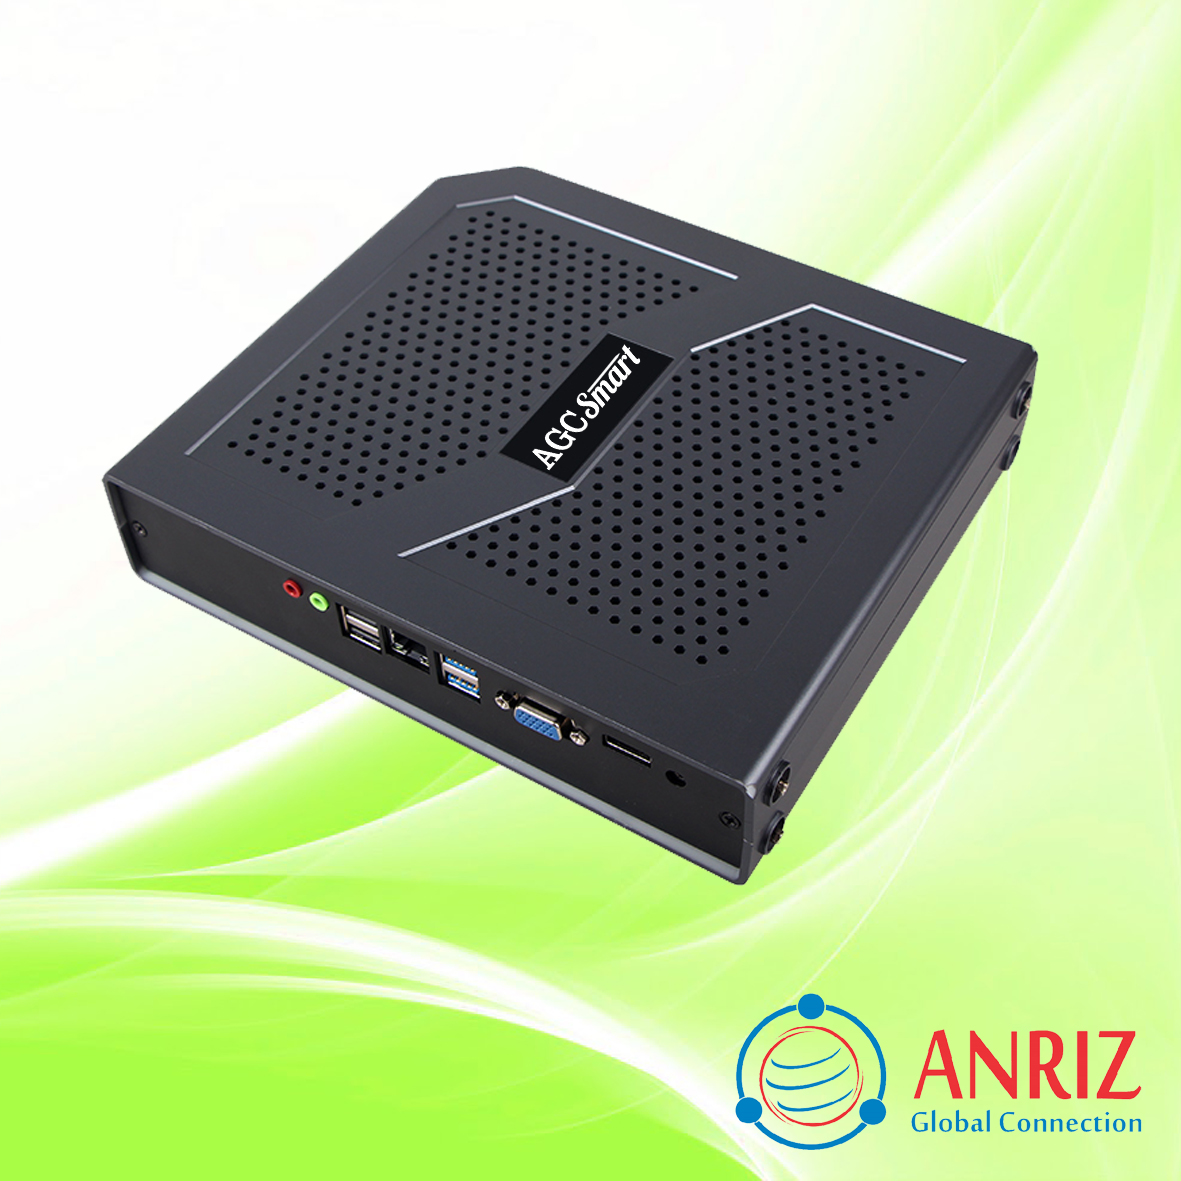 mini-pc-agc3900-atas